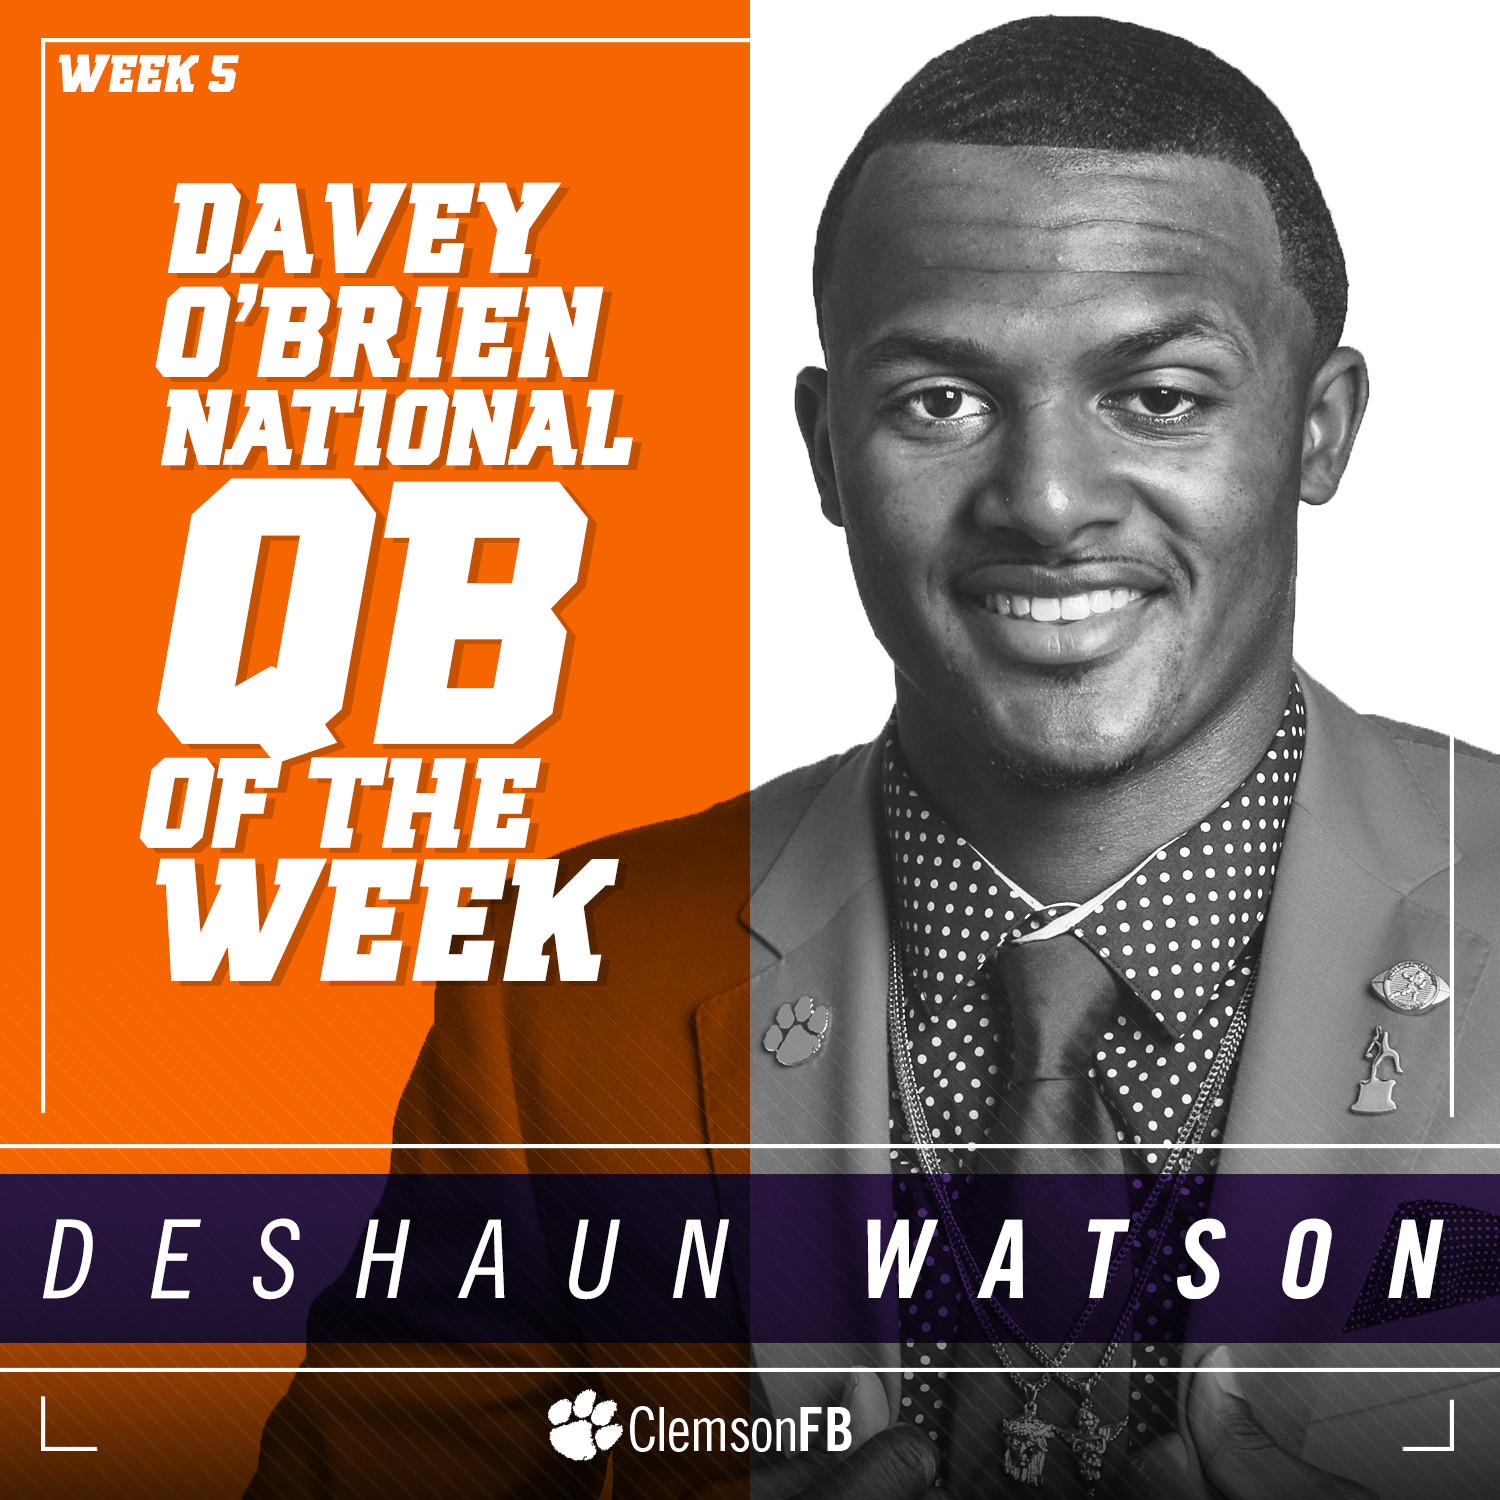 Watson Named O'Brien Award Player of the Week